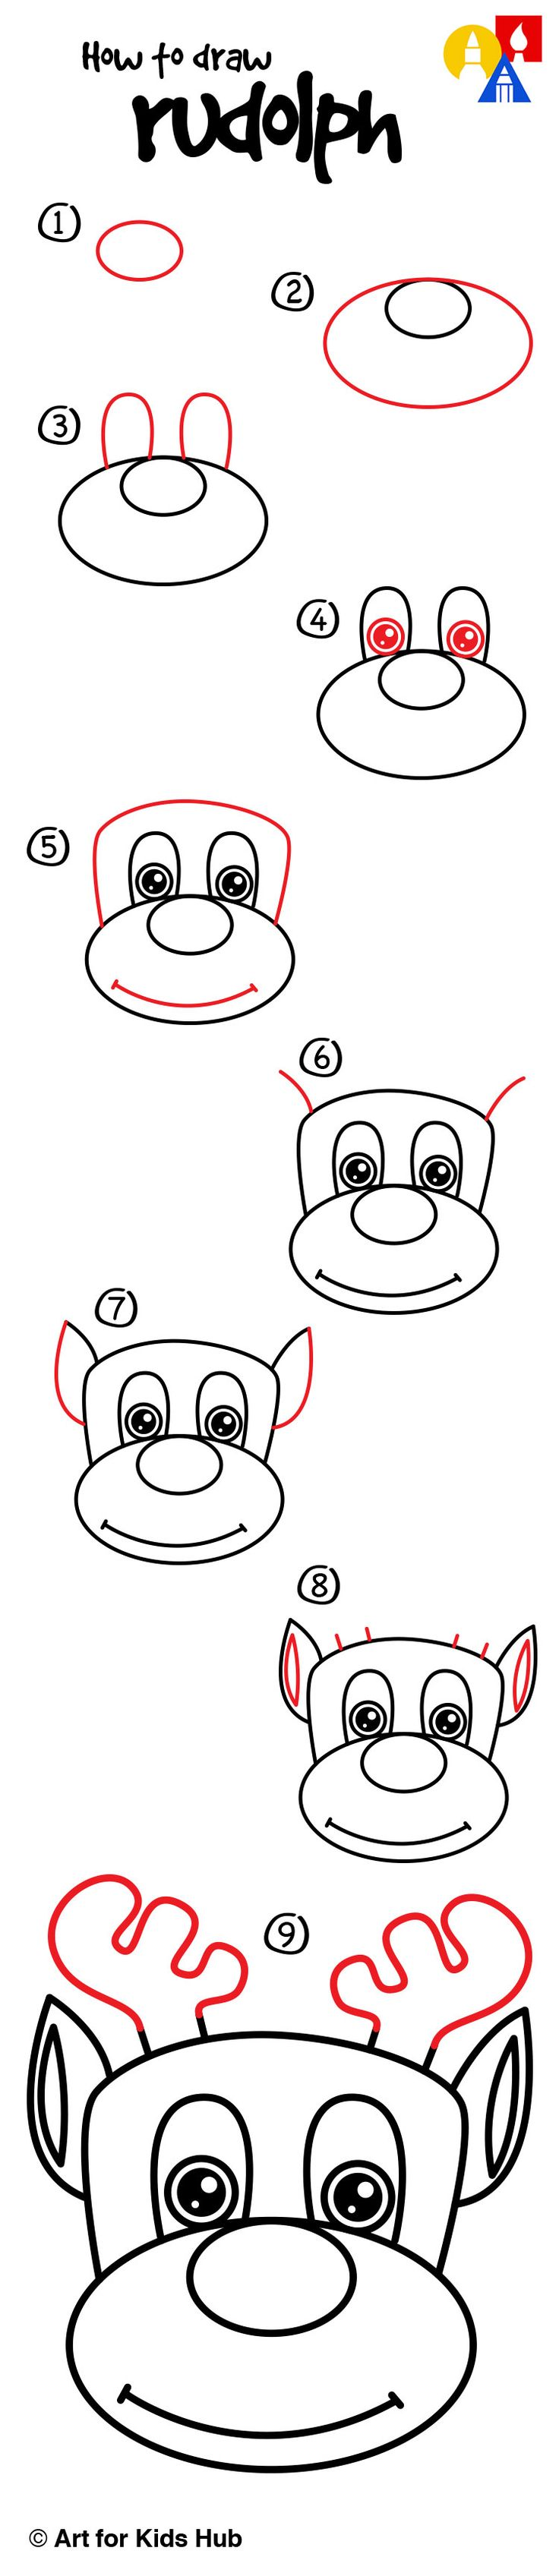 How to draw Rudolph!